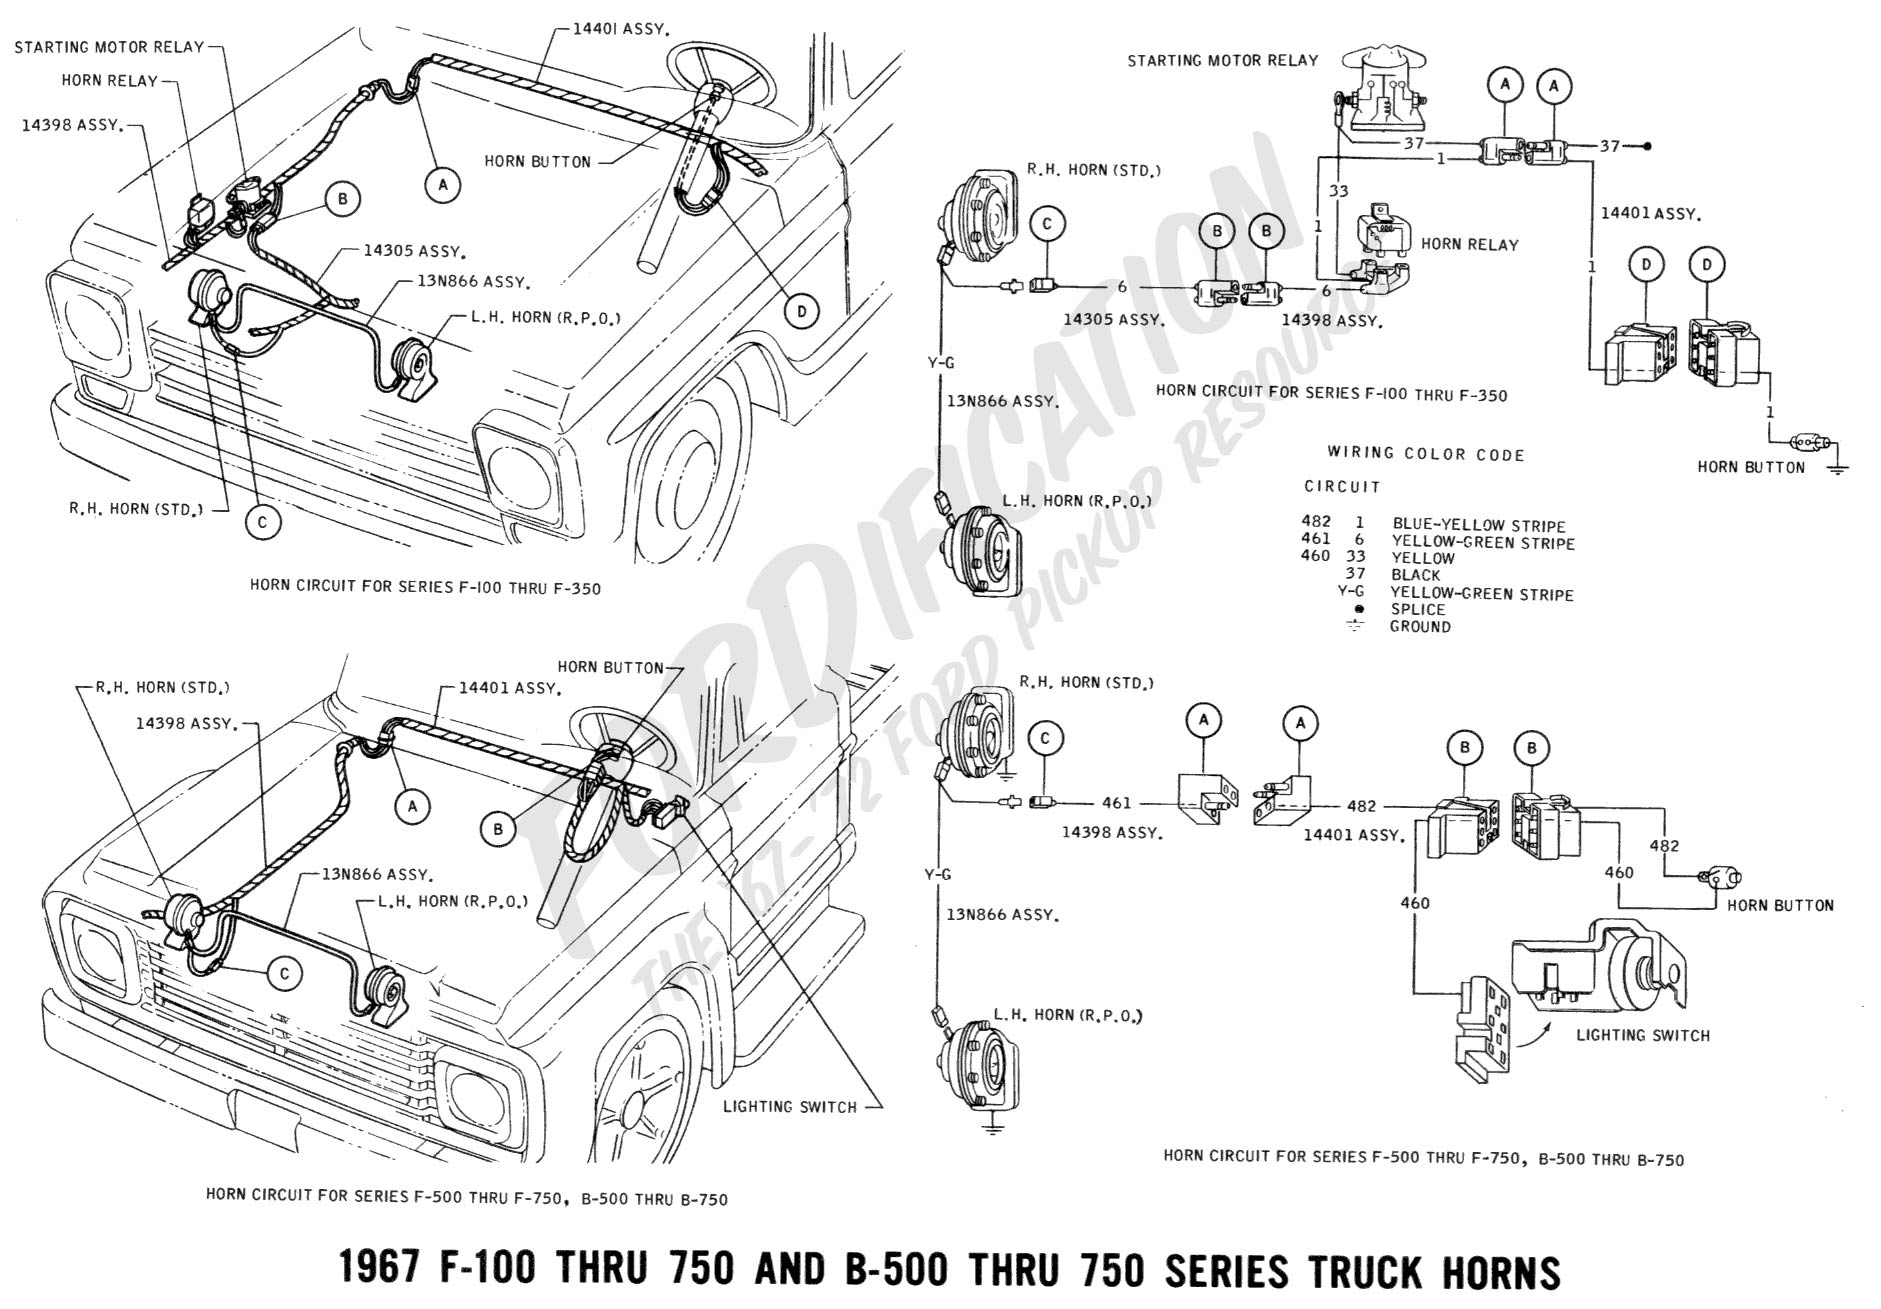 4846f Ford F250 Superduty Pickup 4x4 2004 F250 Super Duty additionally P 0900c152801e5194 together with Schematics h further Chevy Trailer Light Wiring Diagram together with Ford Diagrams. on ford f 250 tail light wiring diagram